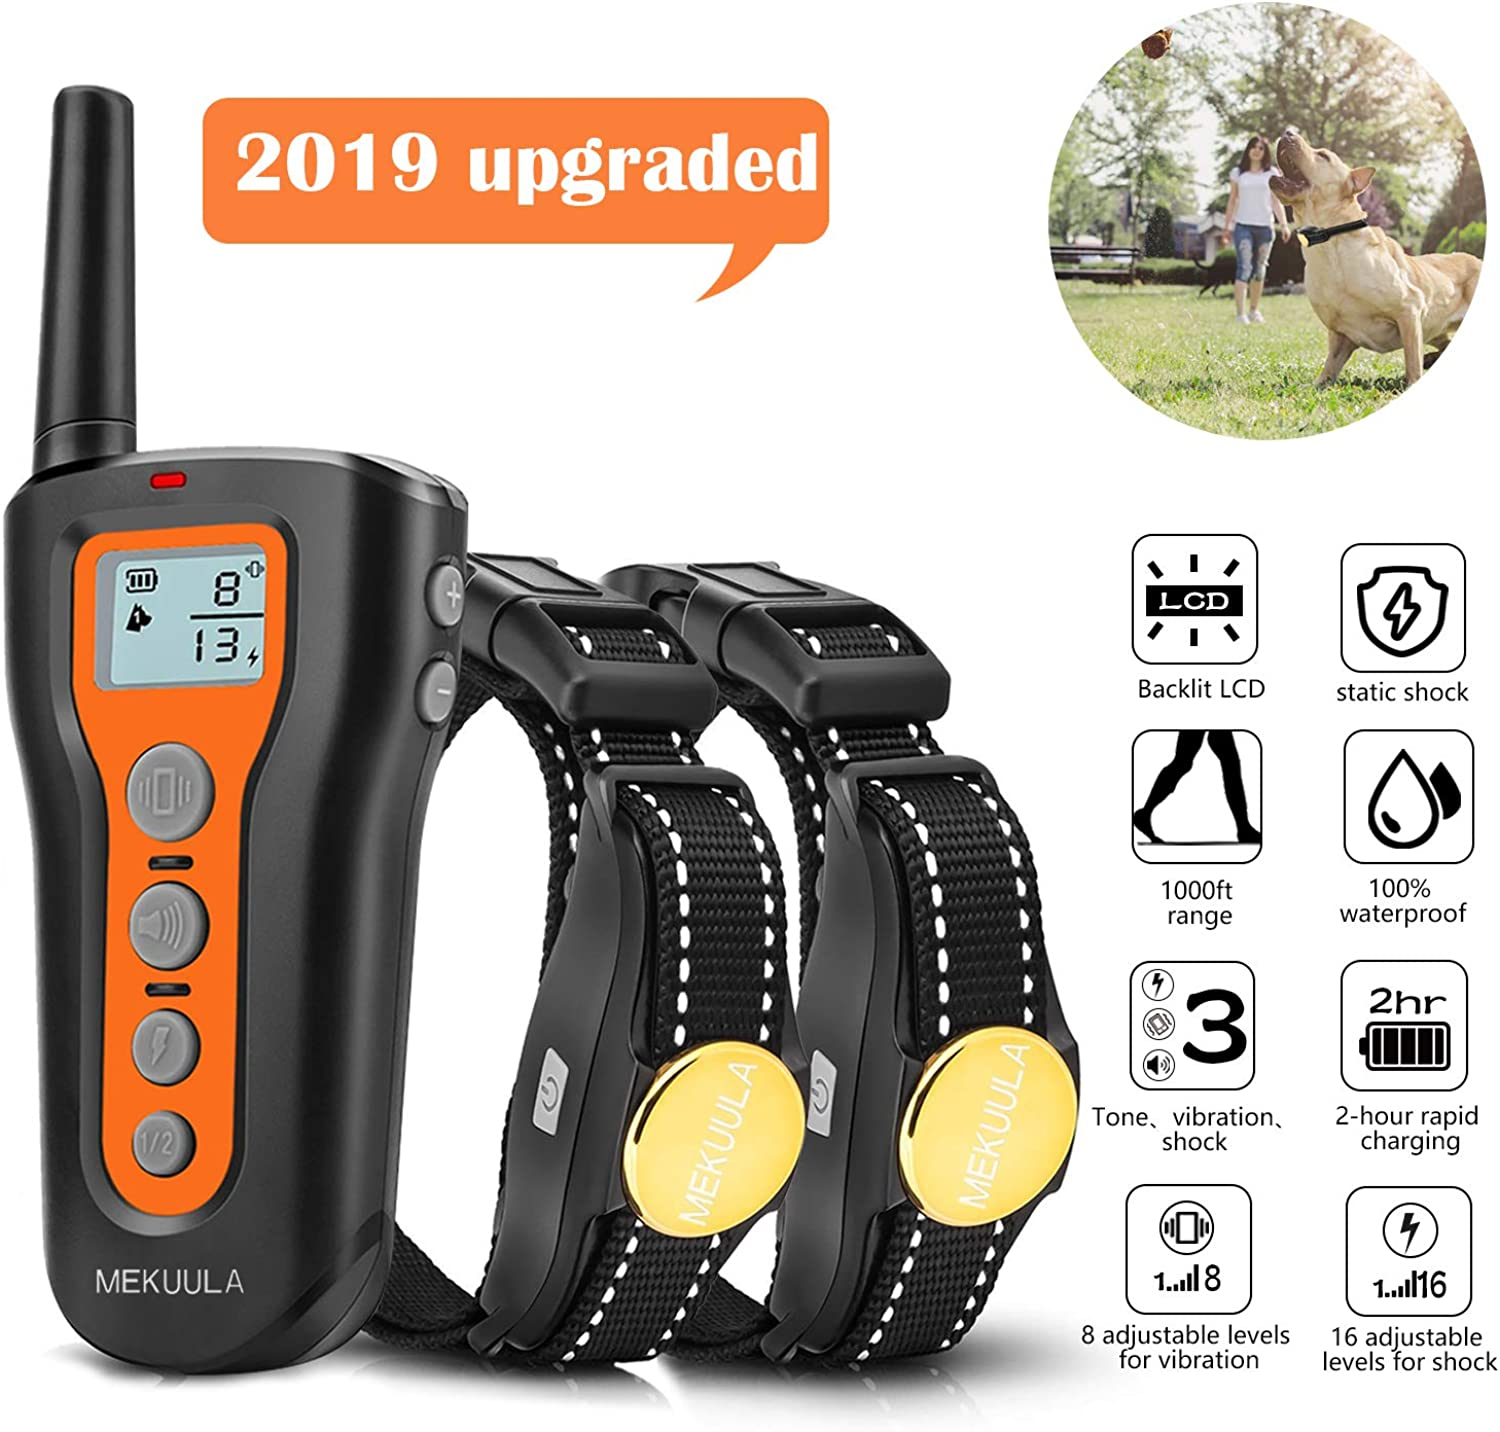 MEKUULA Dog Training Shock Collar for 2 Dogs  Rechargeable & Waterproof  1000ft Pet Trainer Collars with Beep Vibration Shock for Puppy Small Medium Large Dogs